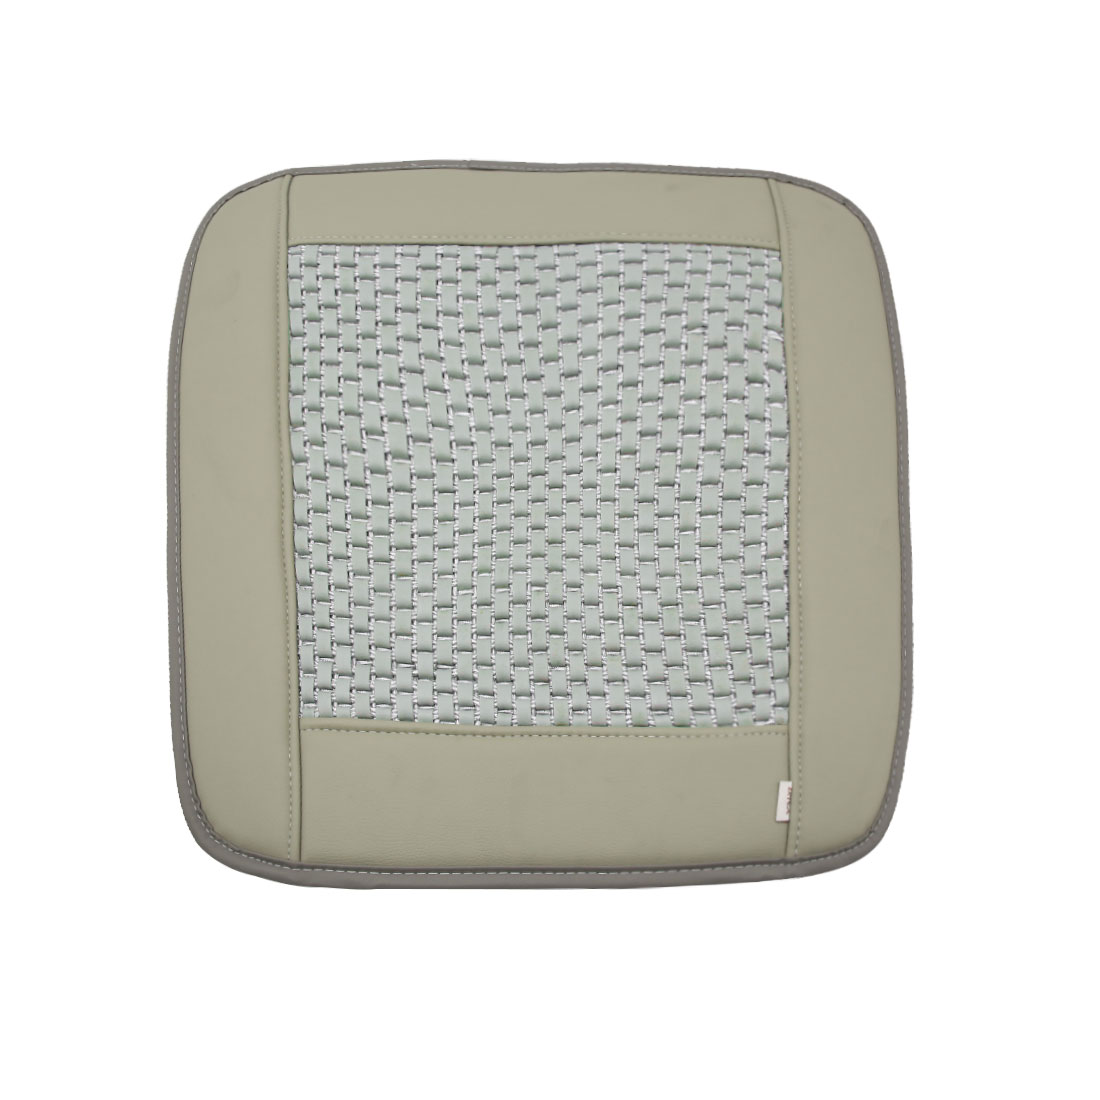 Gray Square Shaped PU Leather  Cushion Cover Pad for Car Automobile